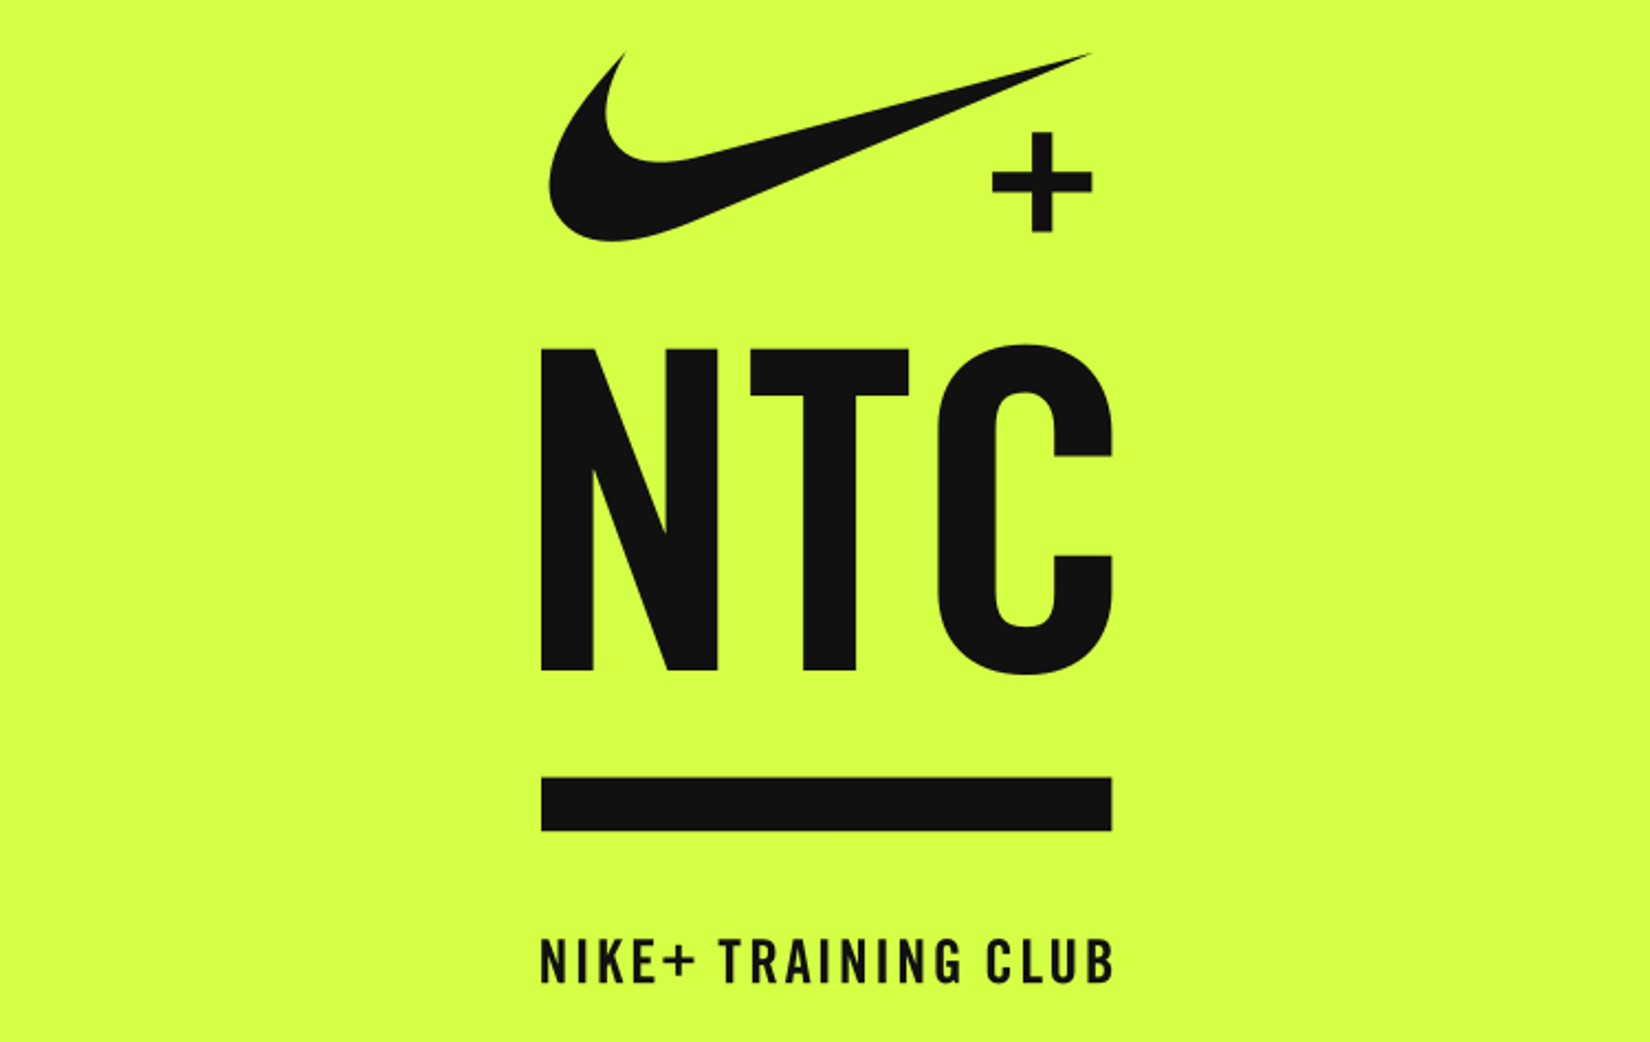 NTC Nike training club